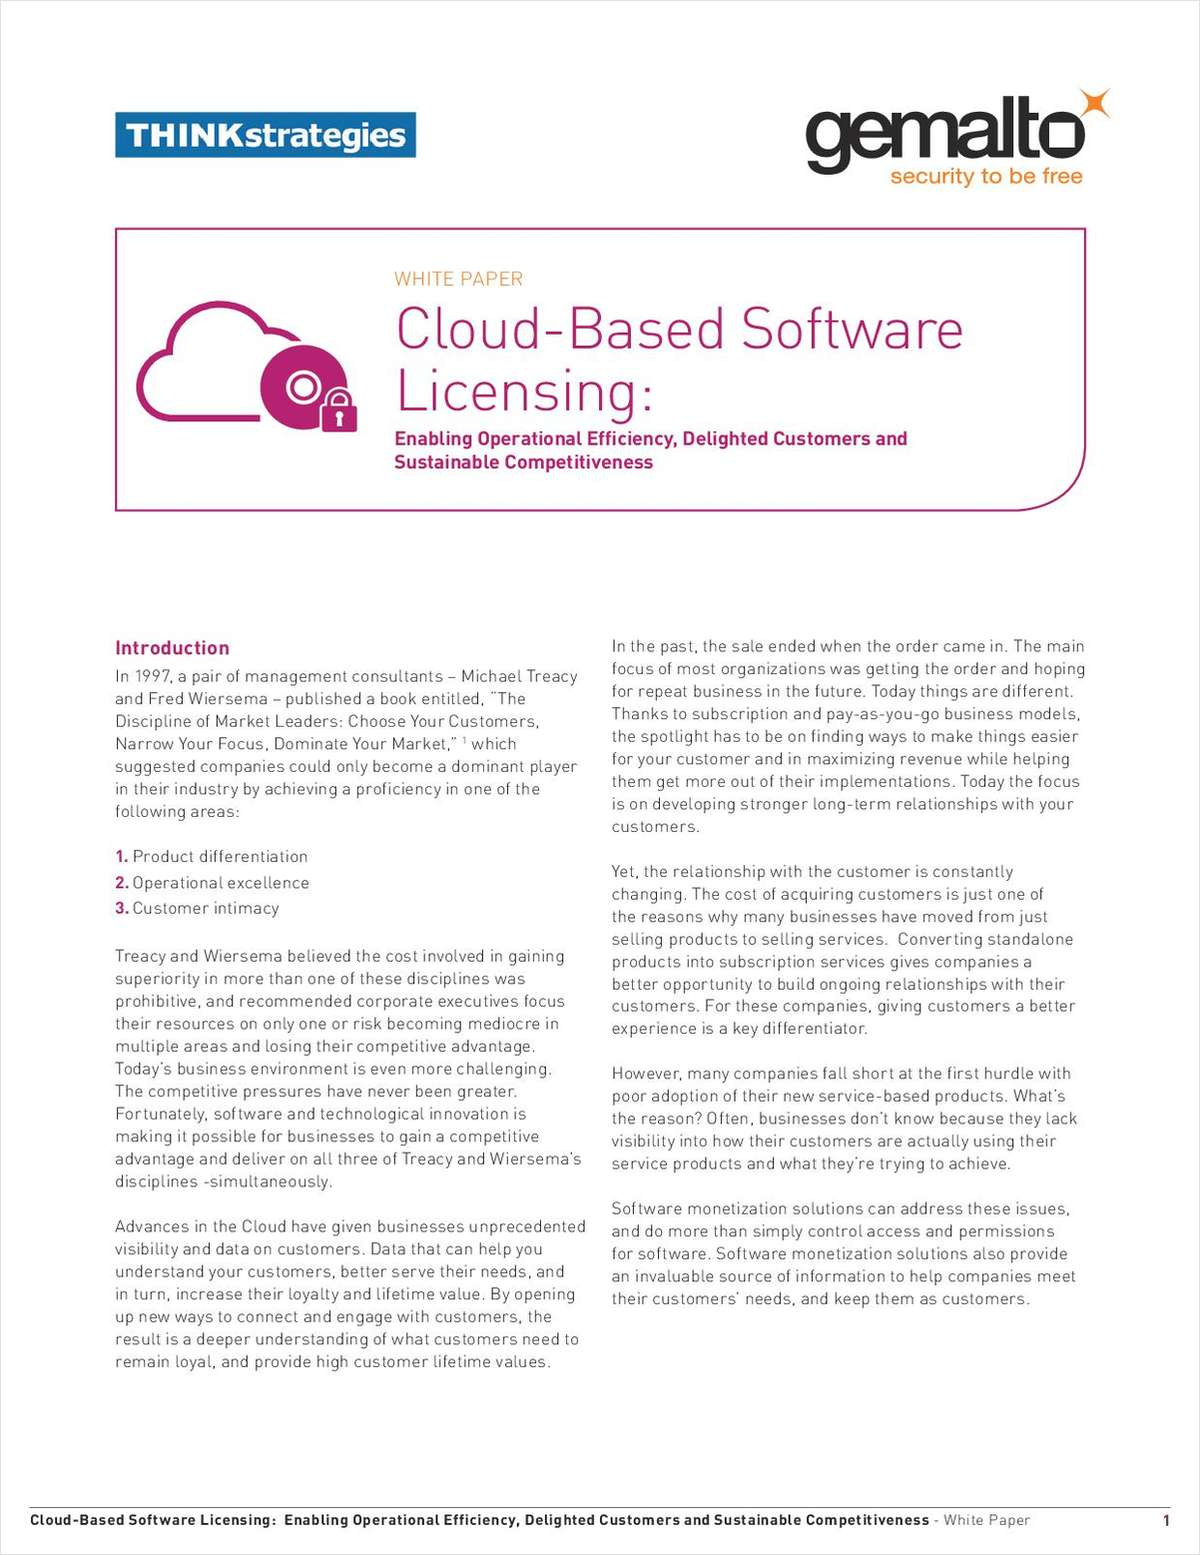 Cloud-Based Software Licensing